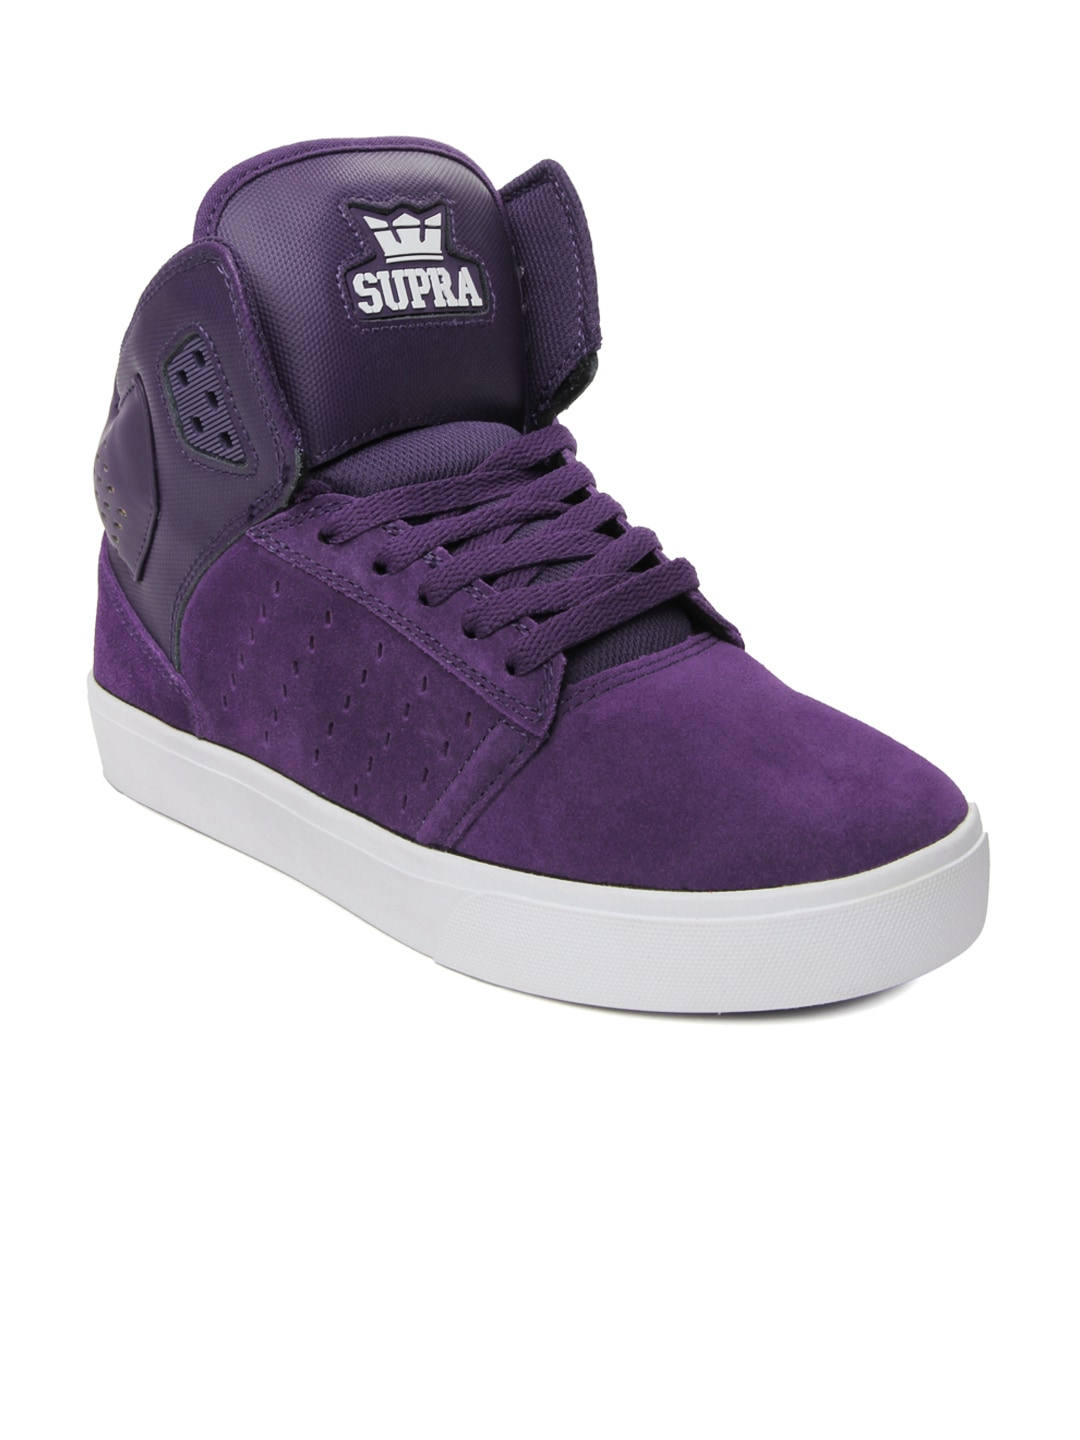 5422abaa3618 Supra s91004 Men Purple Atom Suede Casual Shoes - Best Price in ...